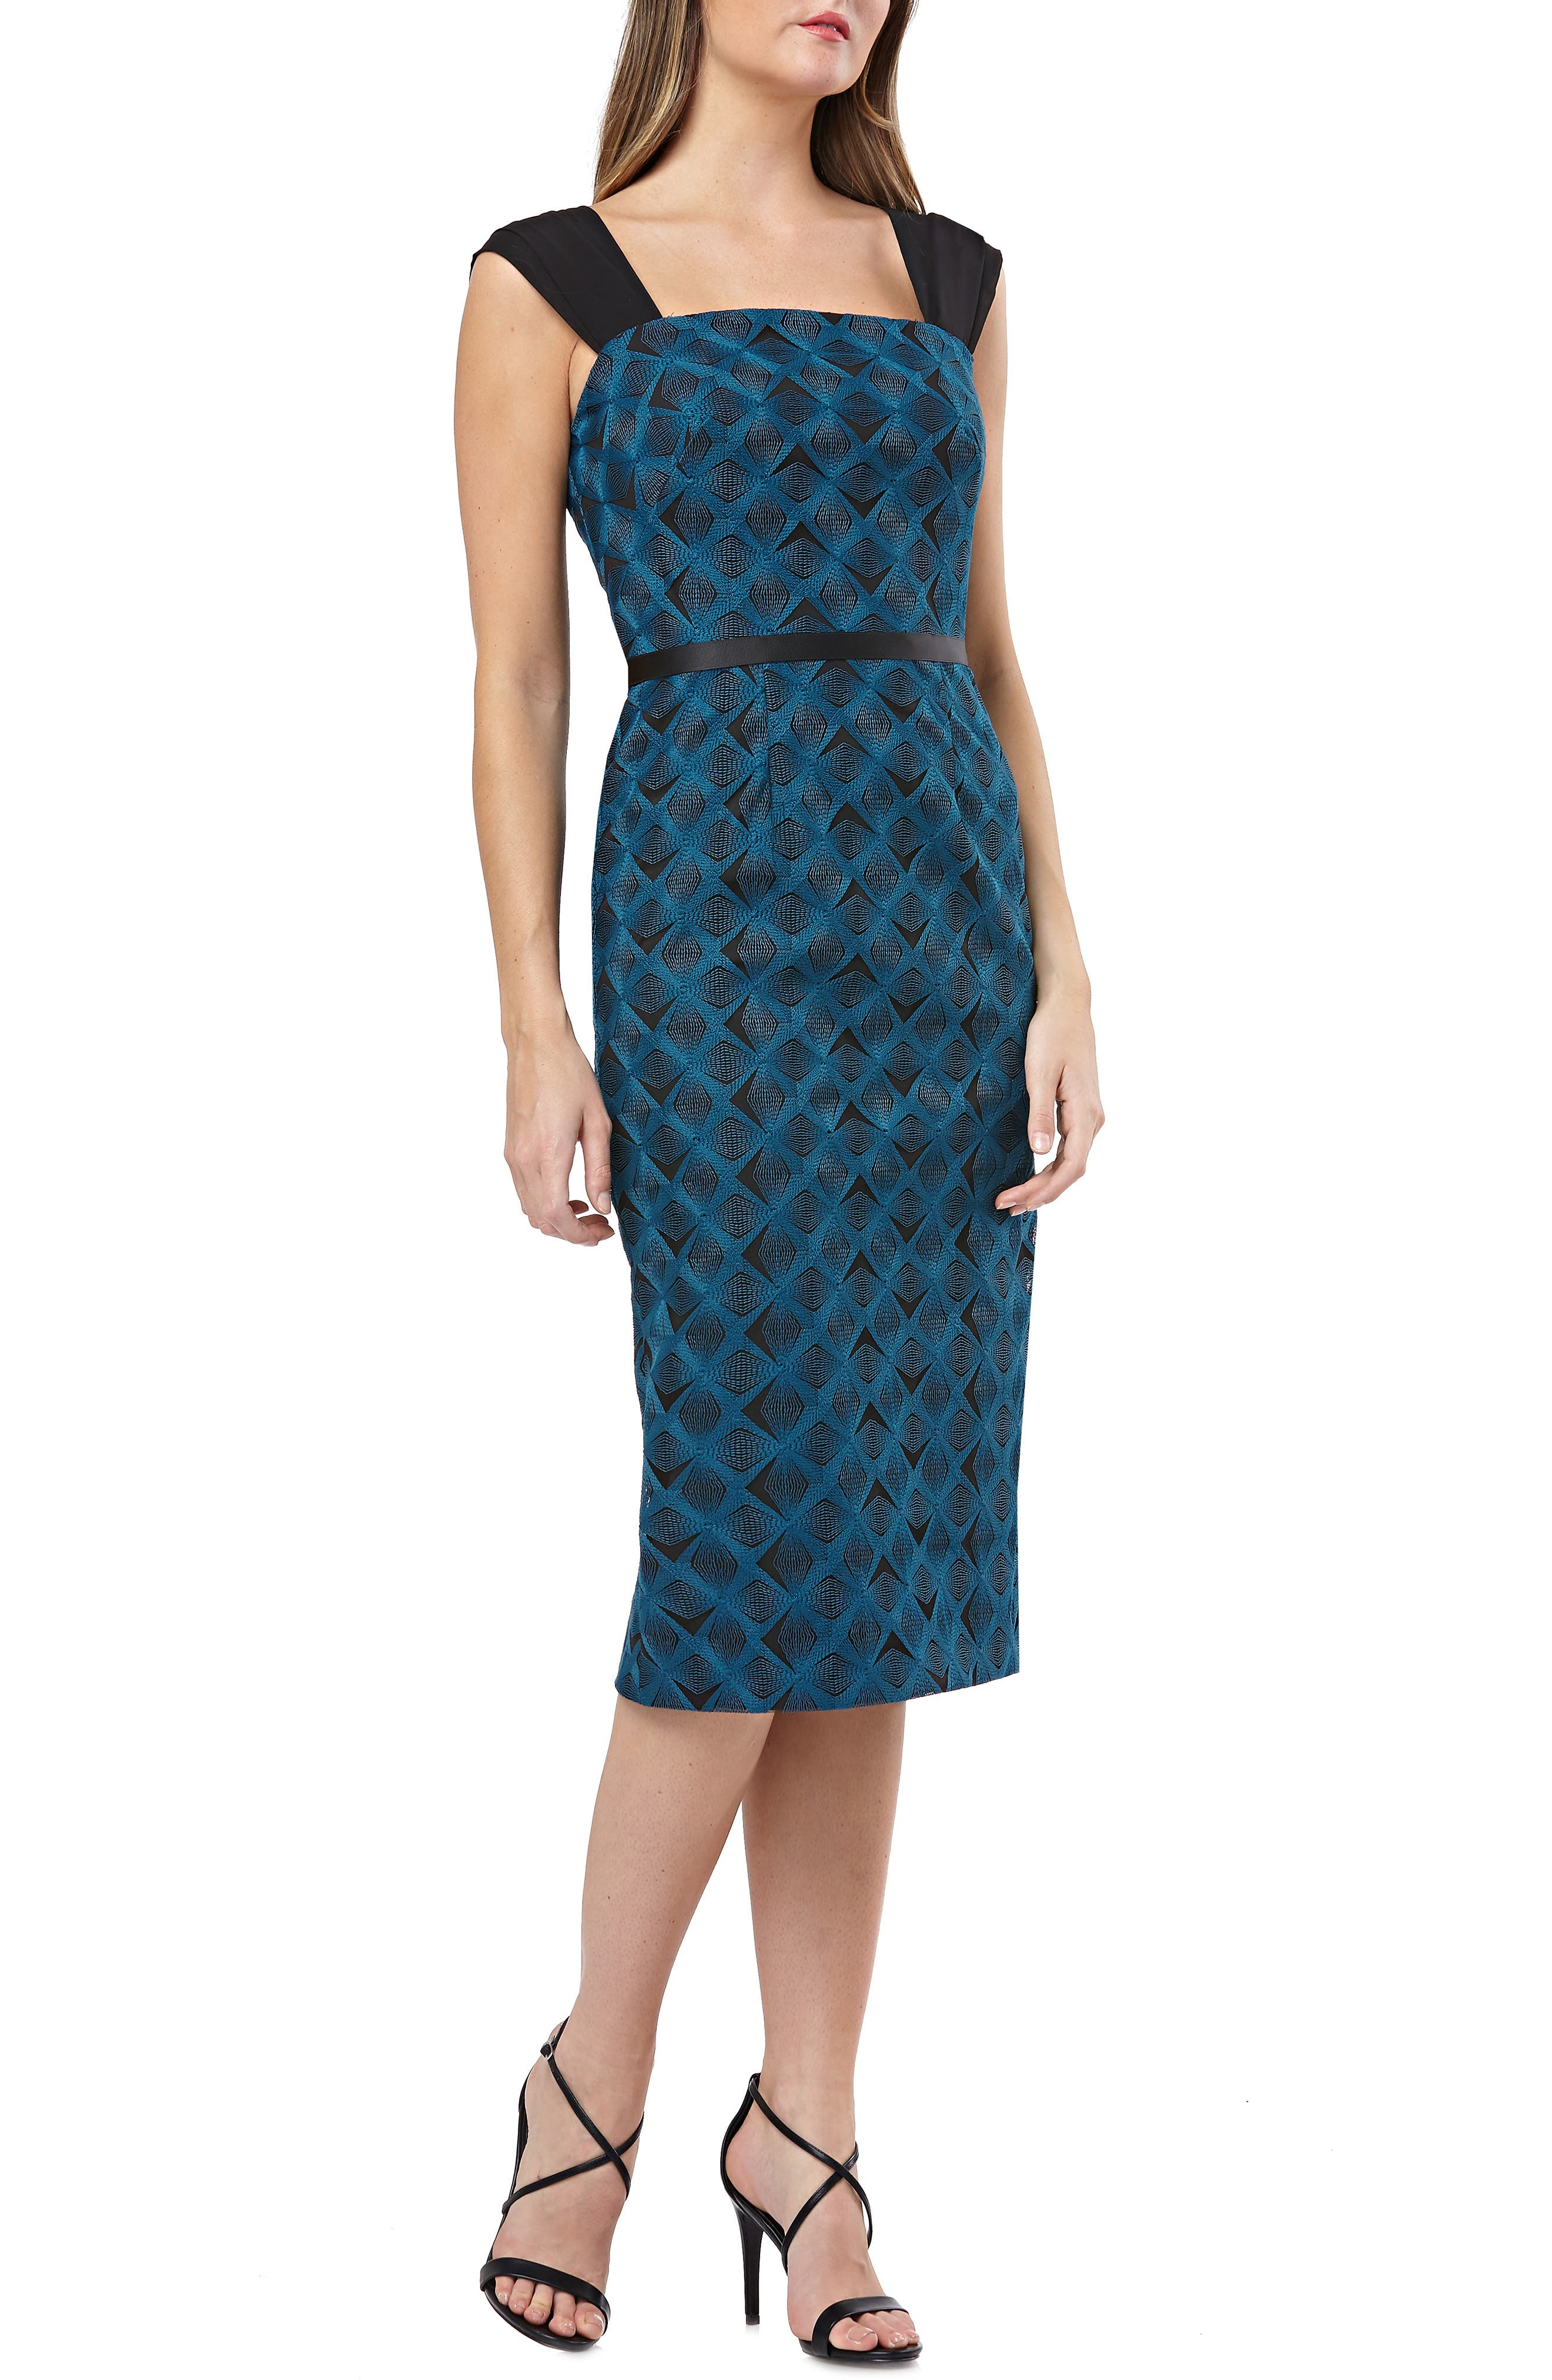 KAY UNGER Geometric Embroidered Sheath in Teal